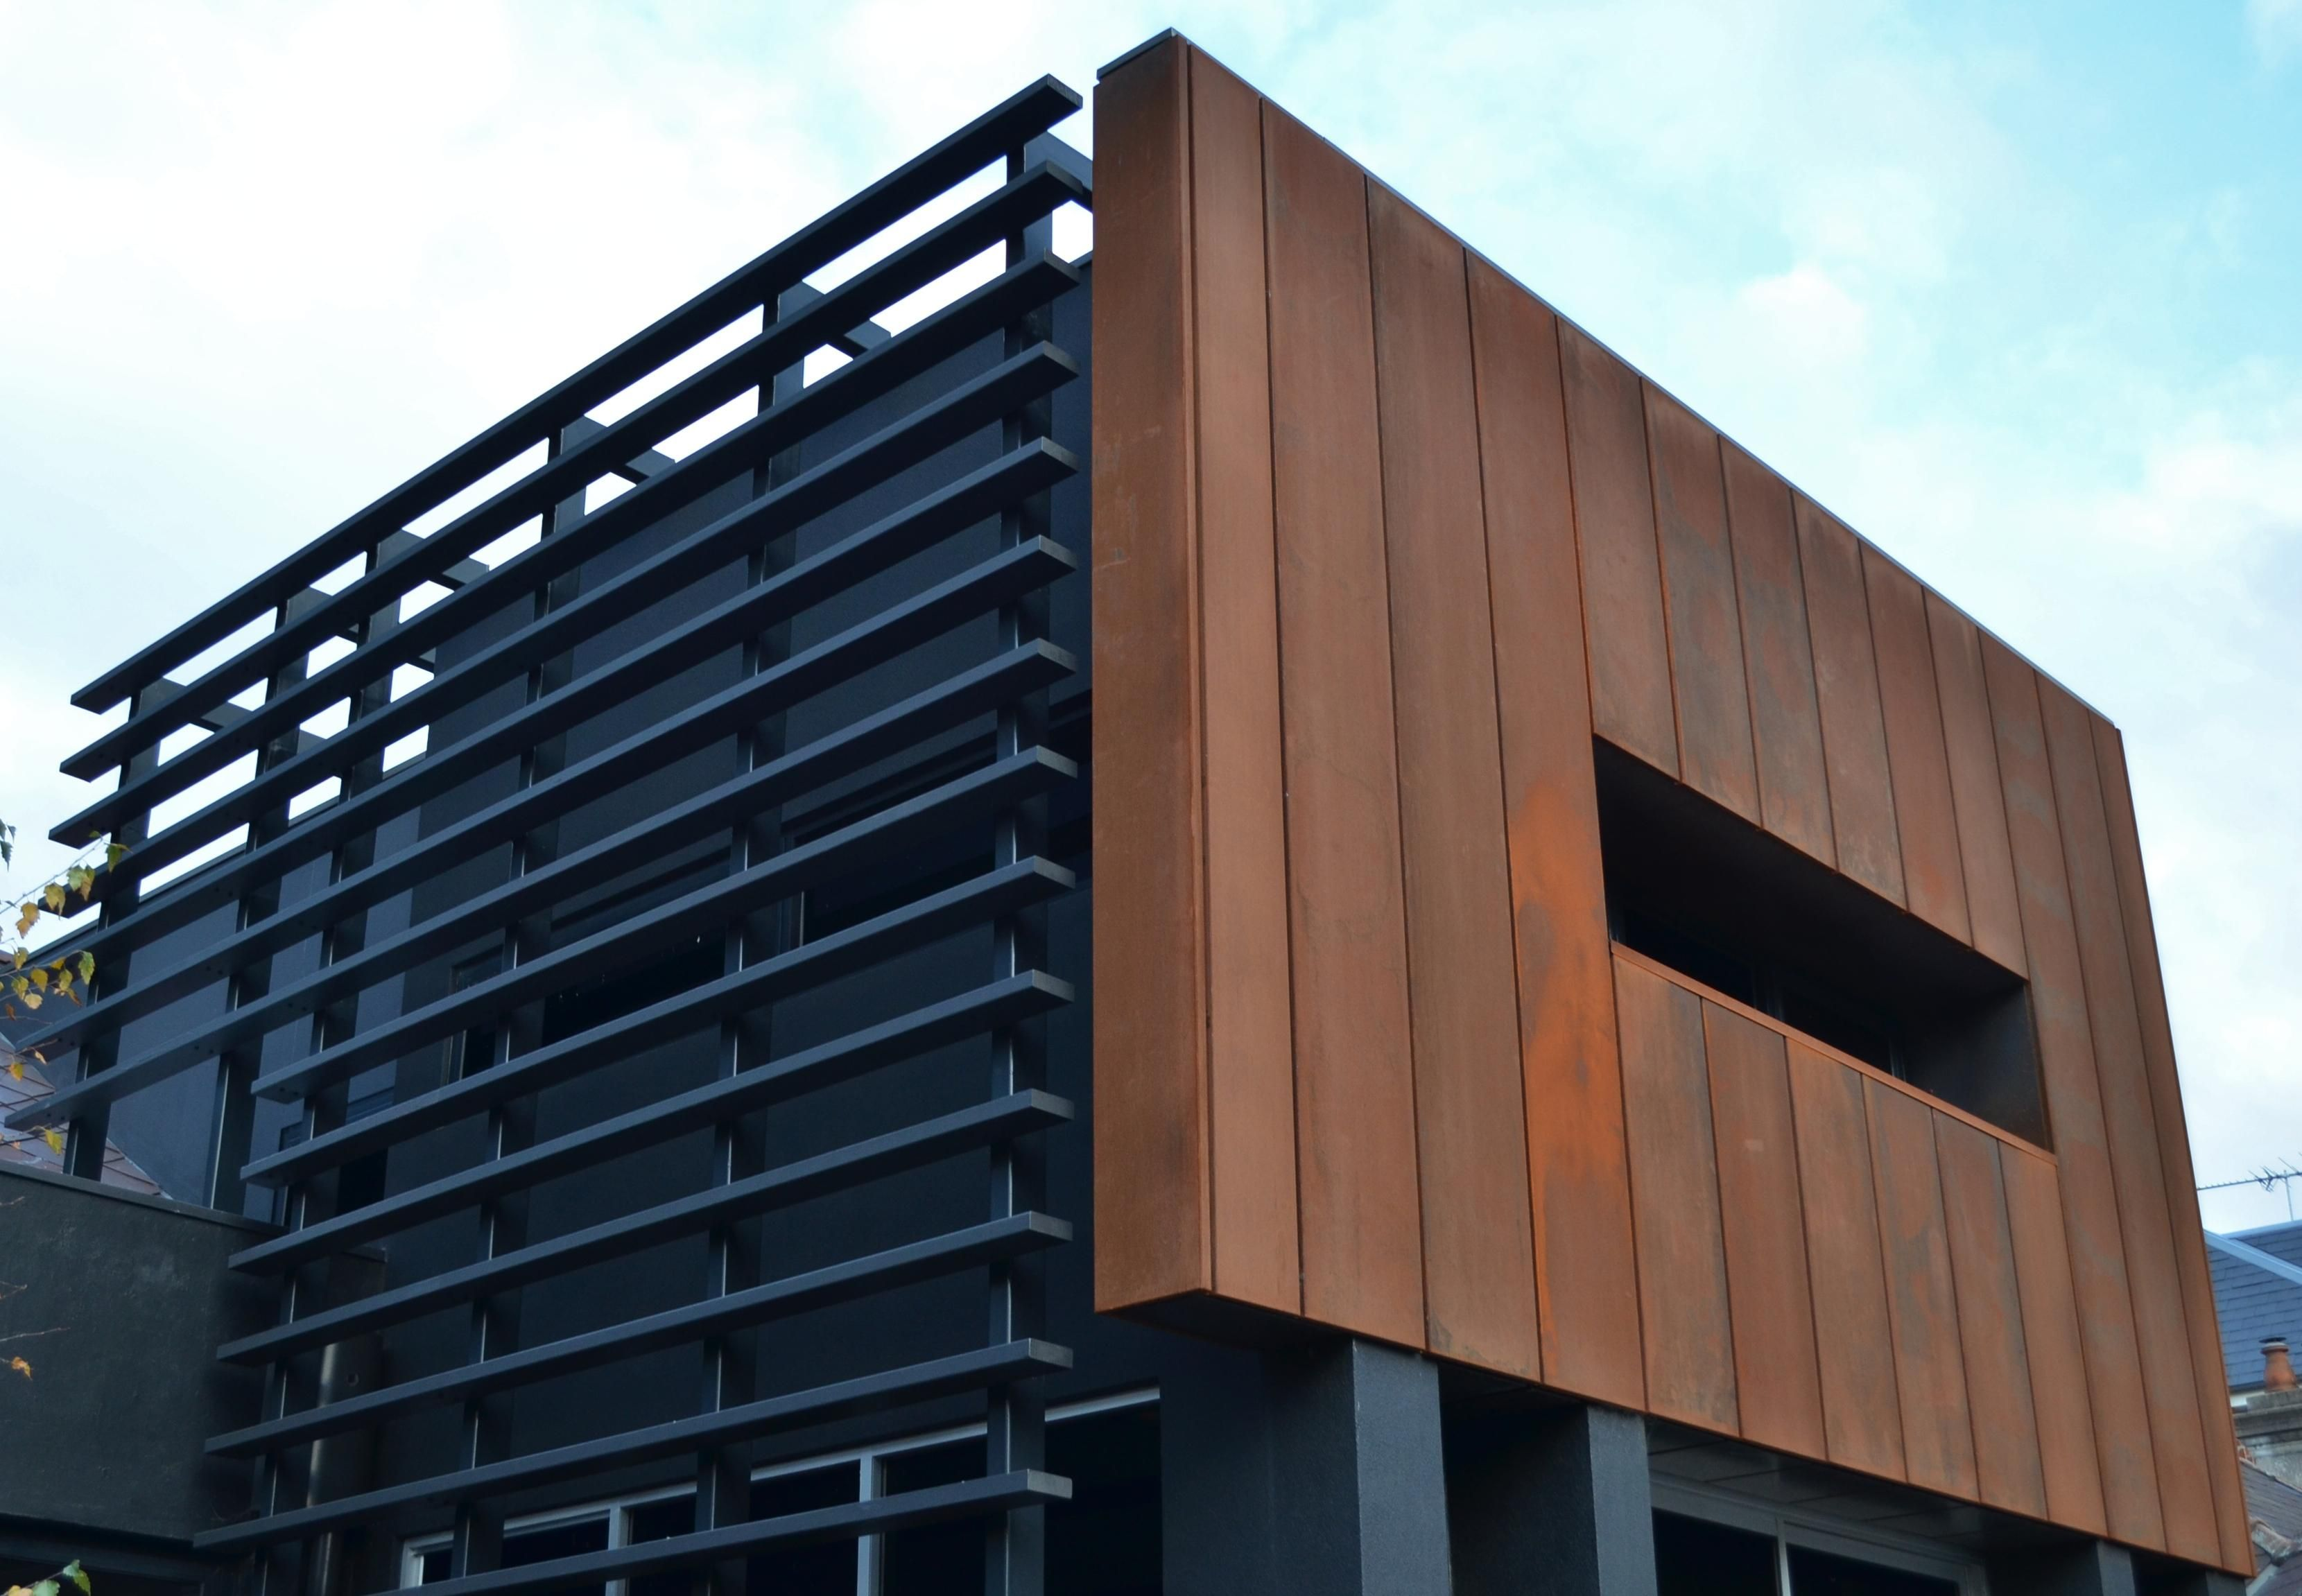 Cassette panel copper design cladding architecture for External wall materials